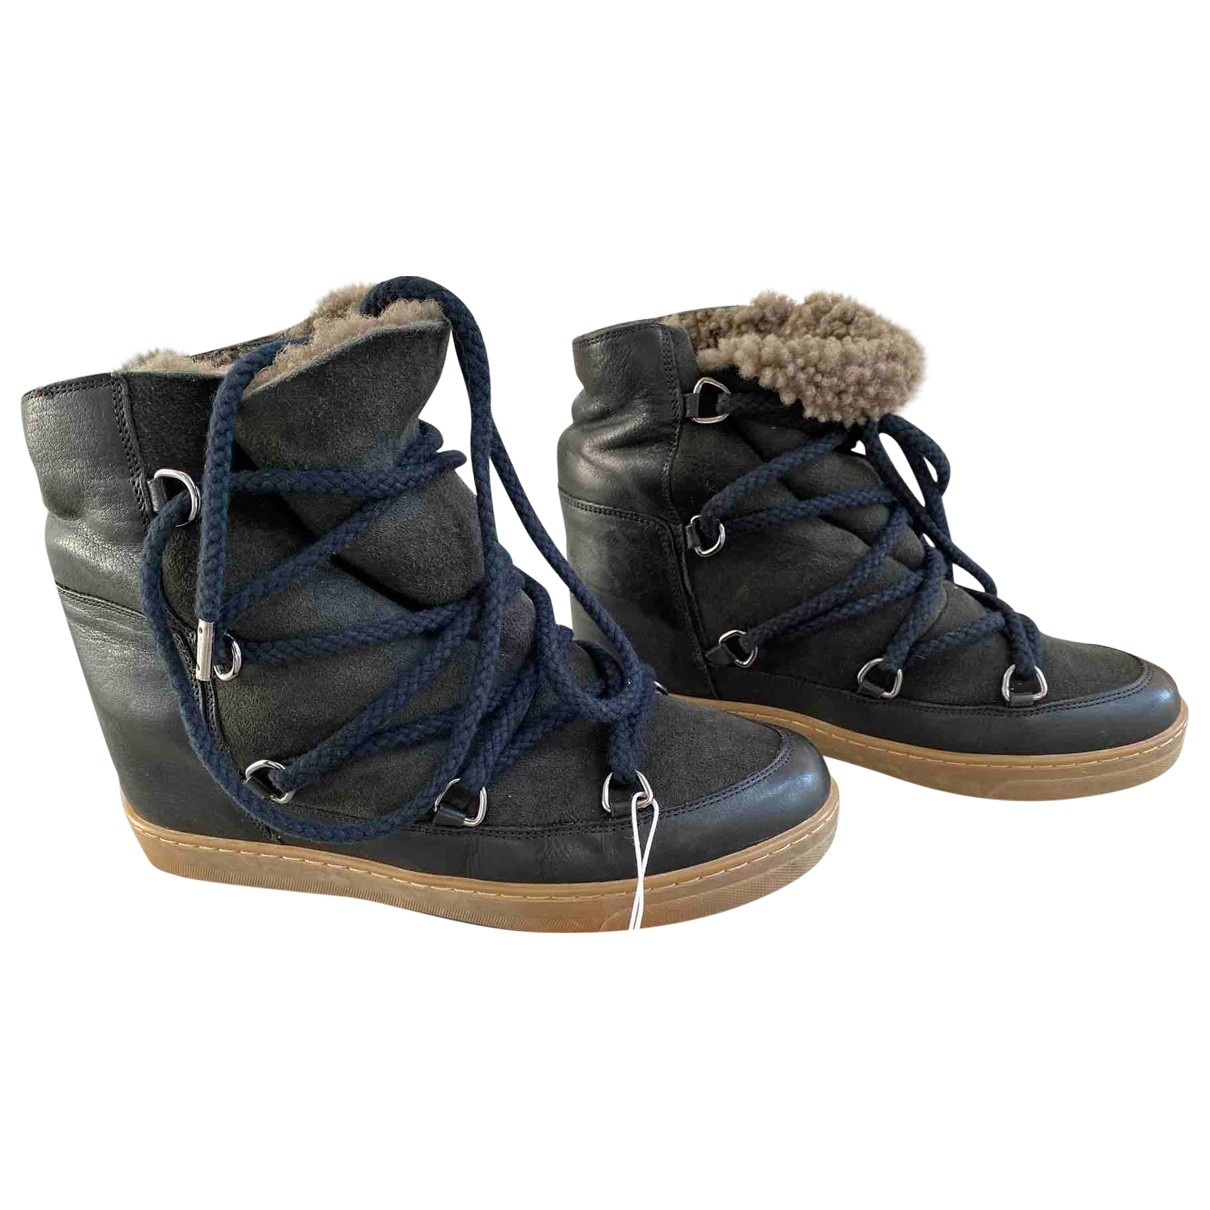 Isabel Marant Etoile \N Black Leather Ankle boots for Women 39 EU